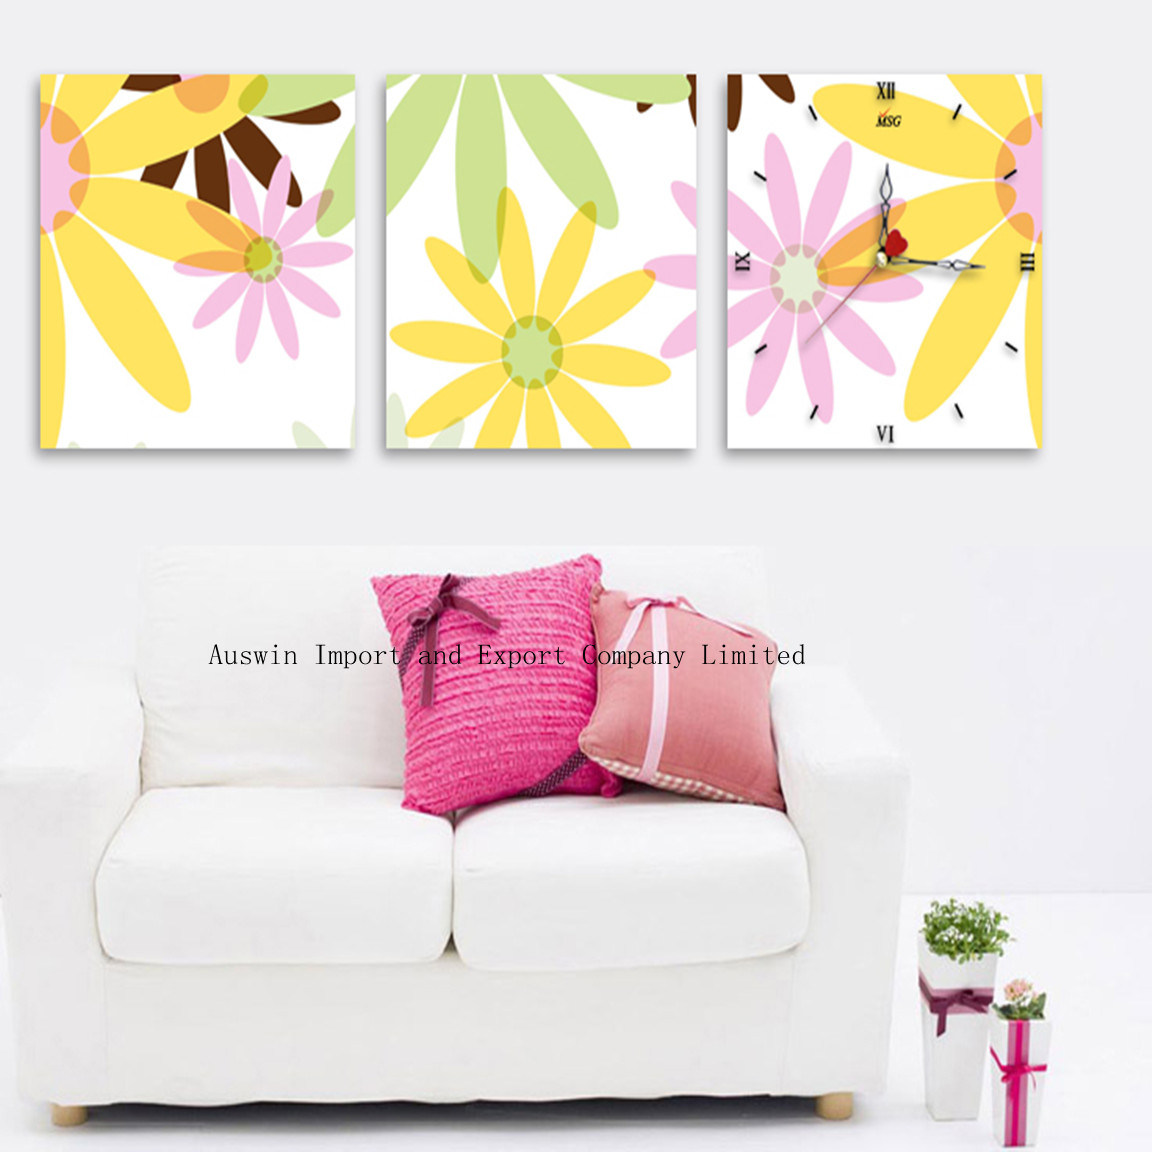 Offering Specialty Painting, Wall Finishes, Decorative Painting or